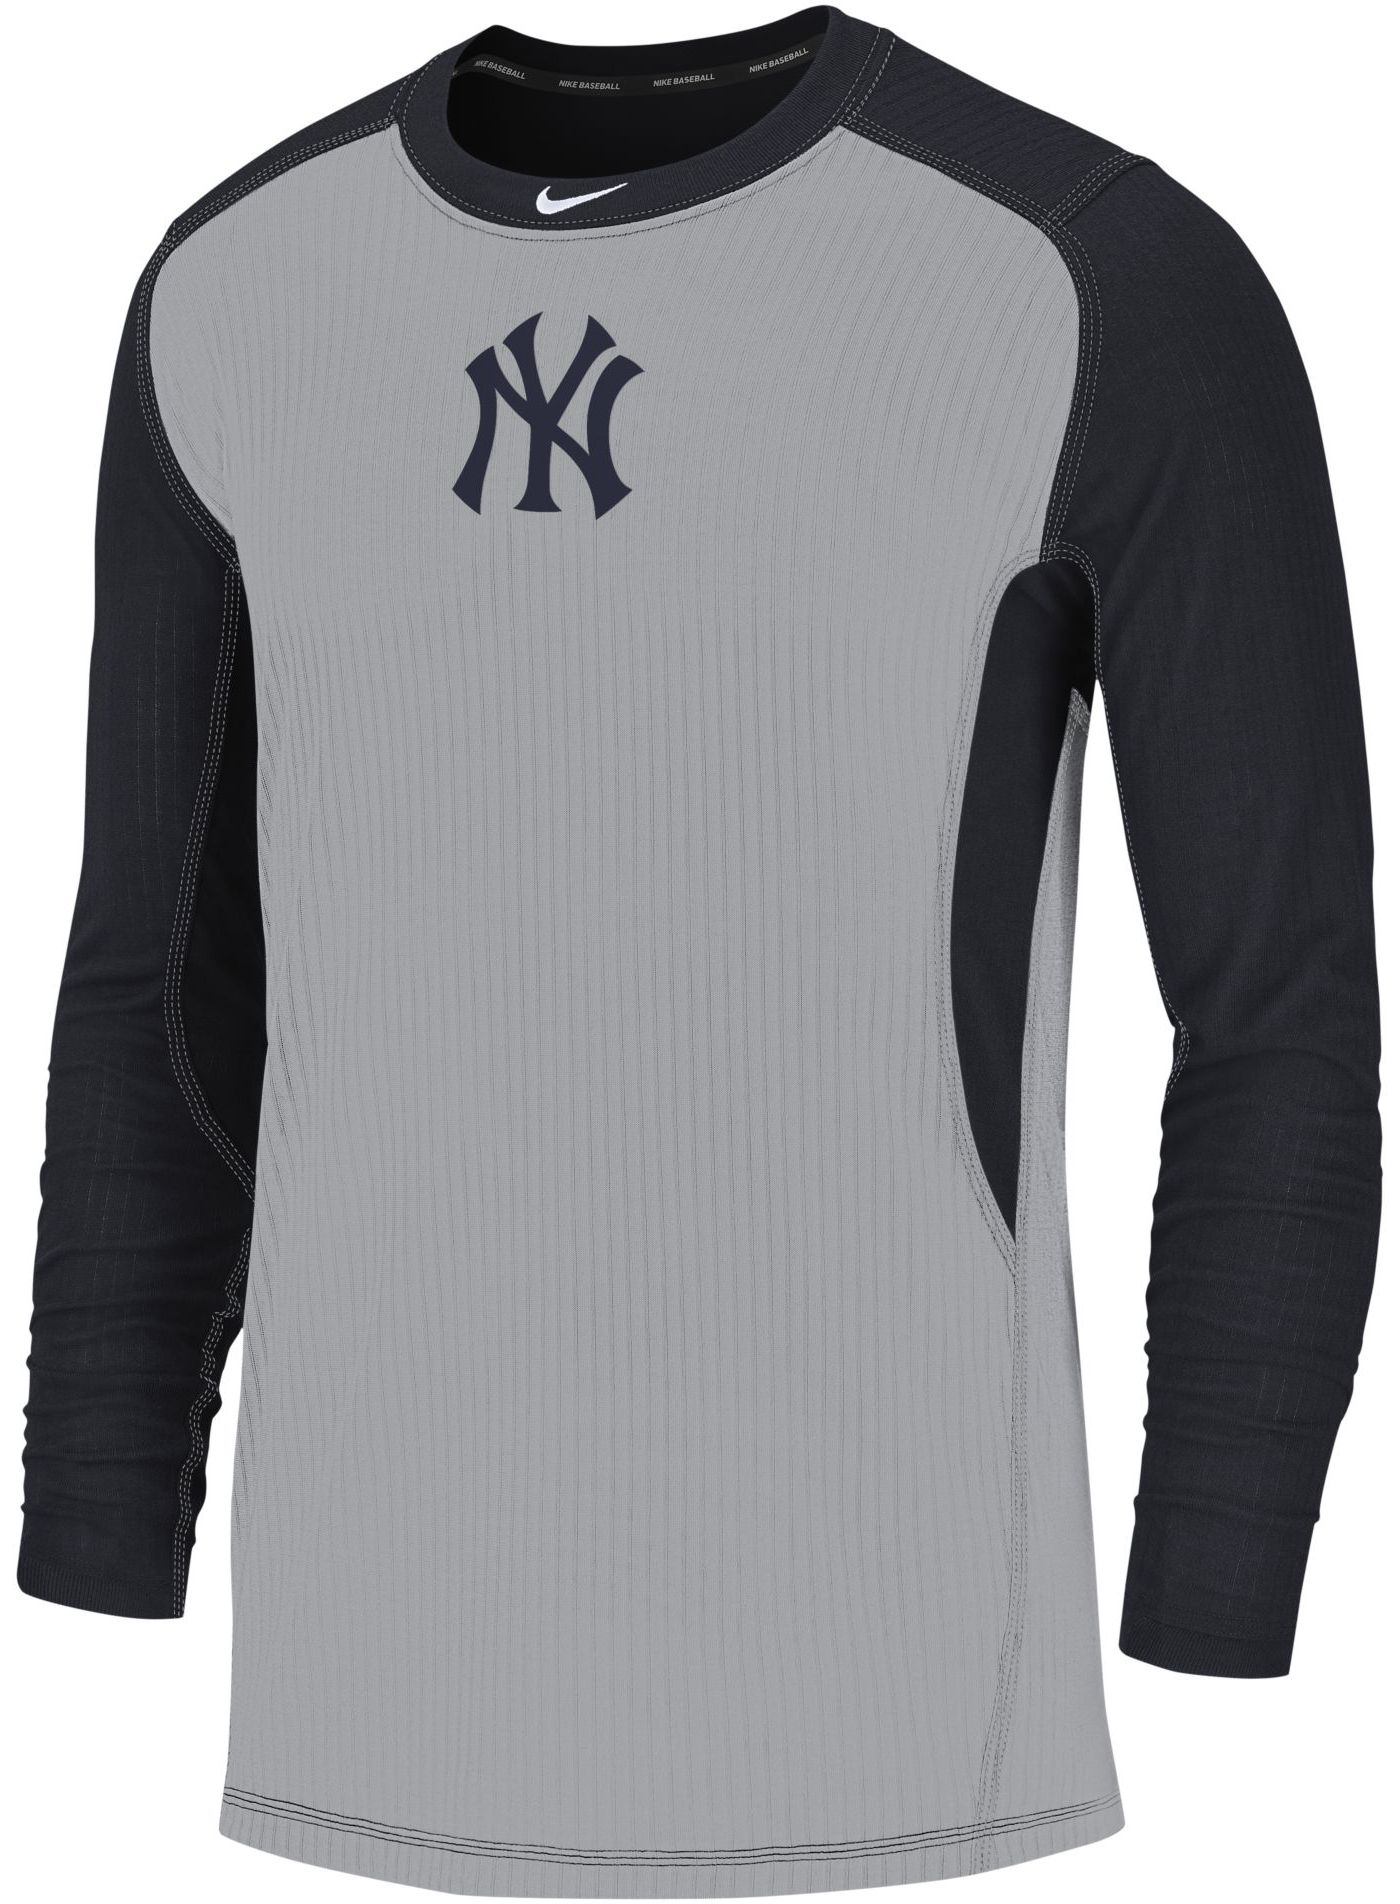 Nike Men's New York Yankees Authentic Collection Dri-FIT Long Sleeve Top